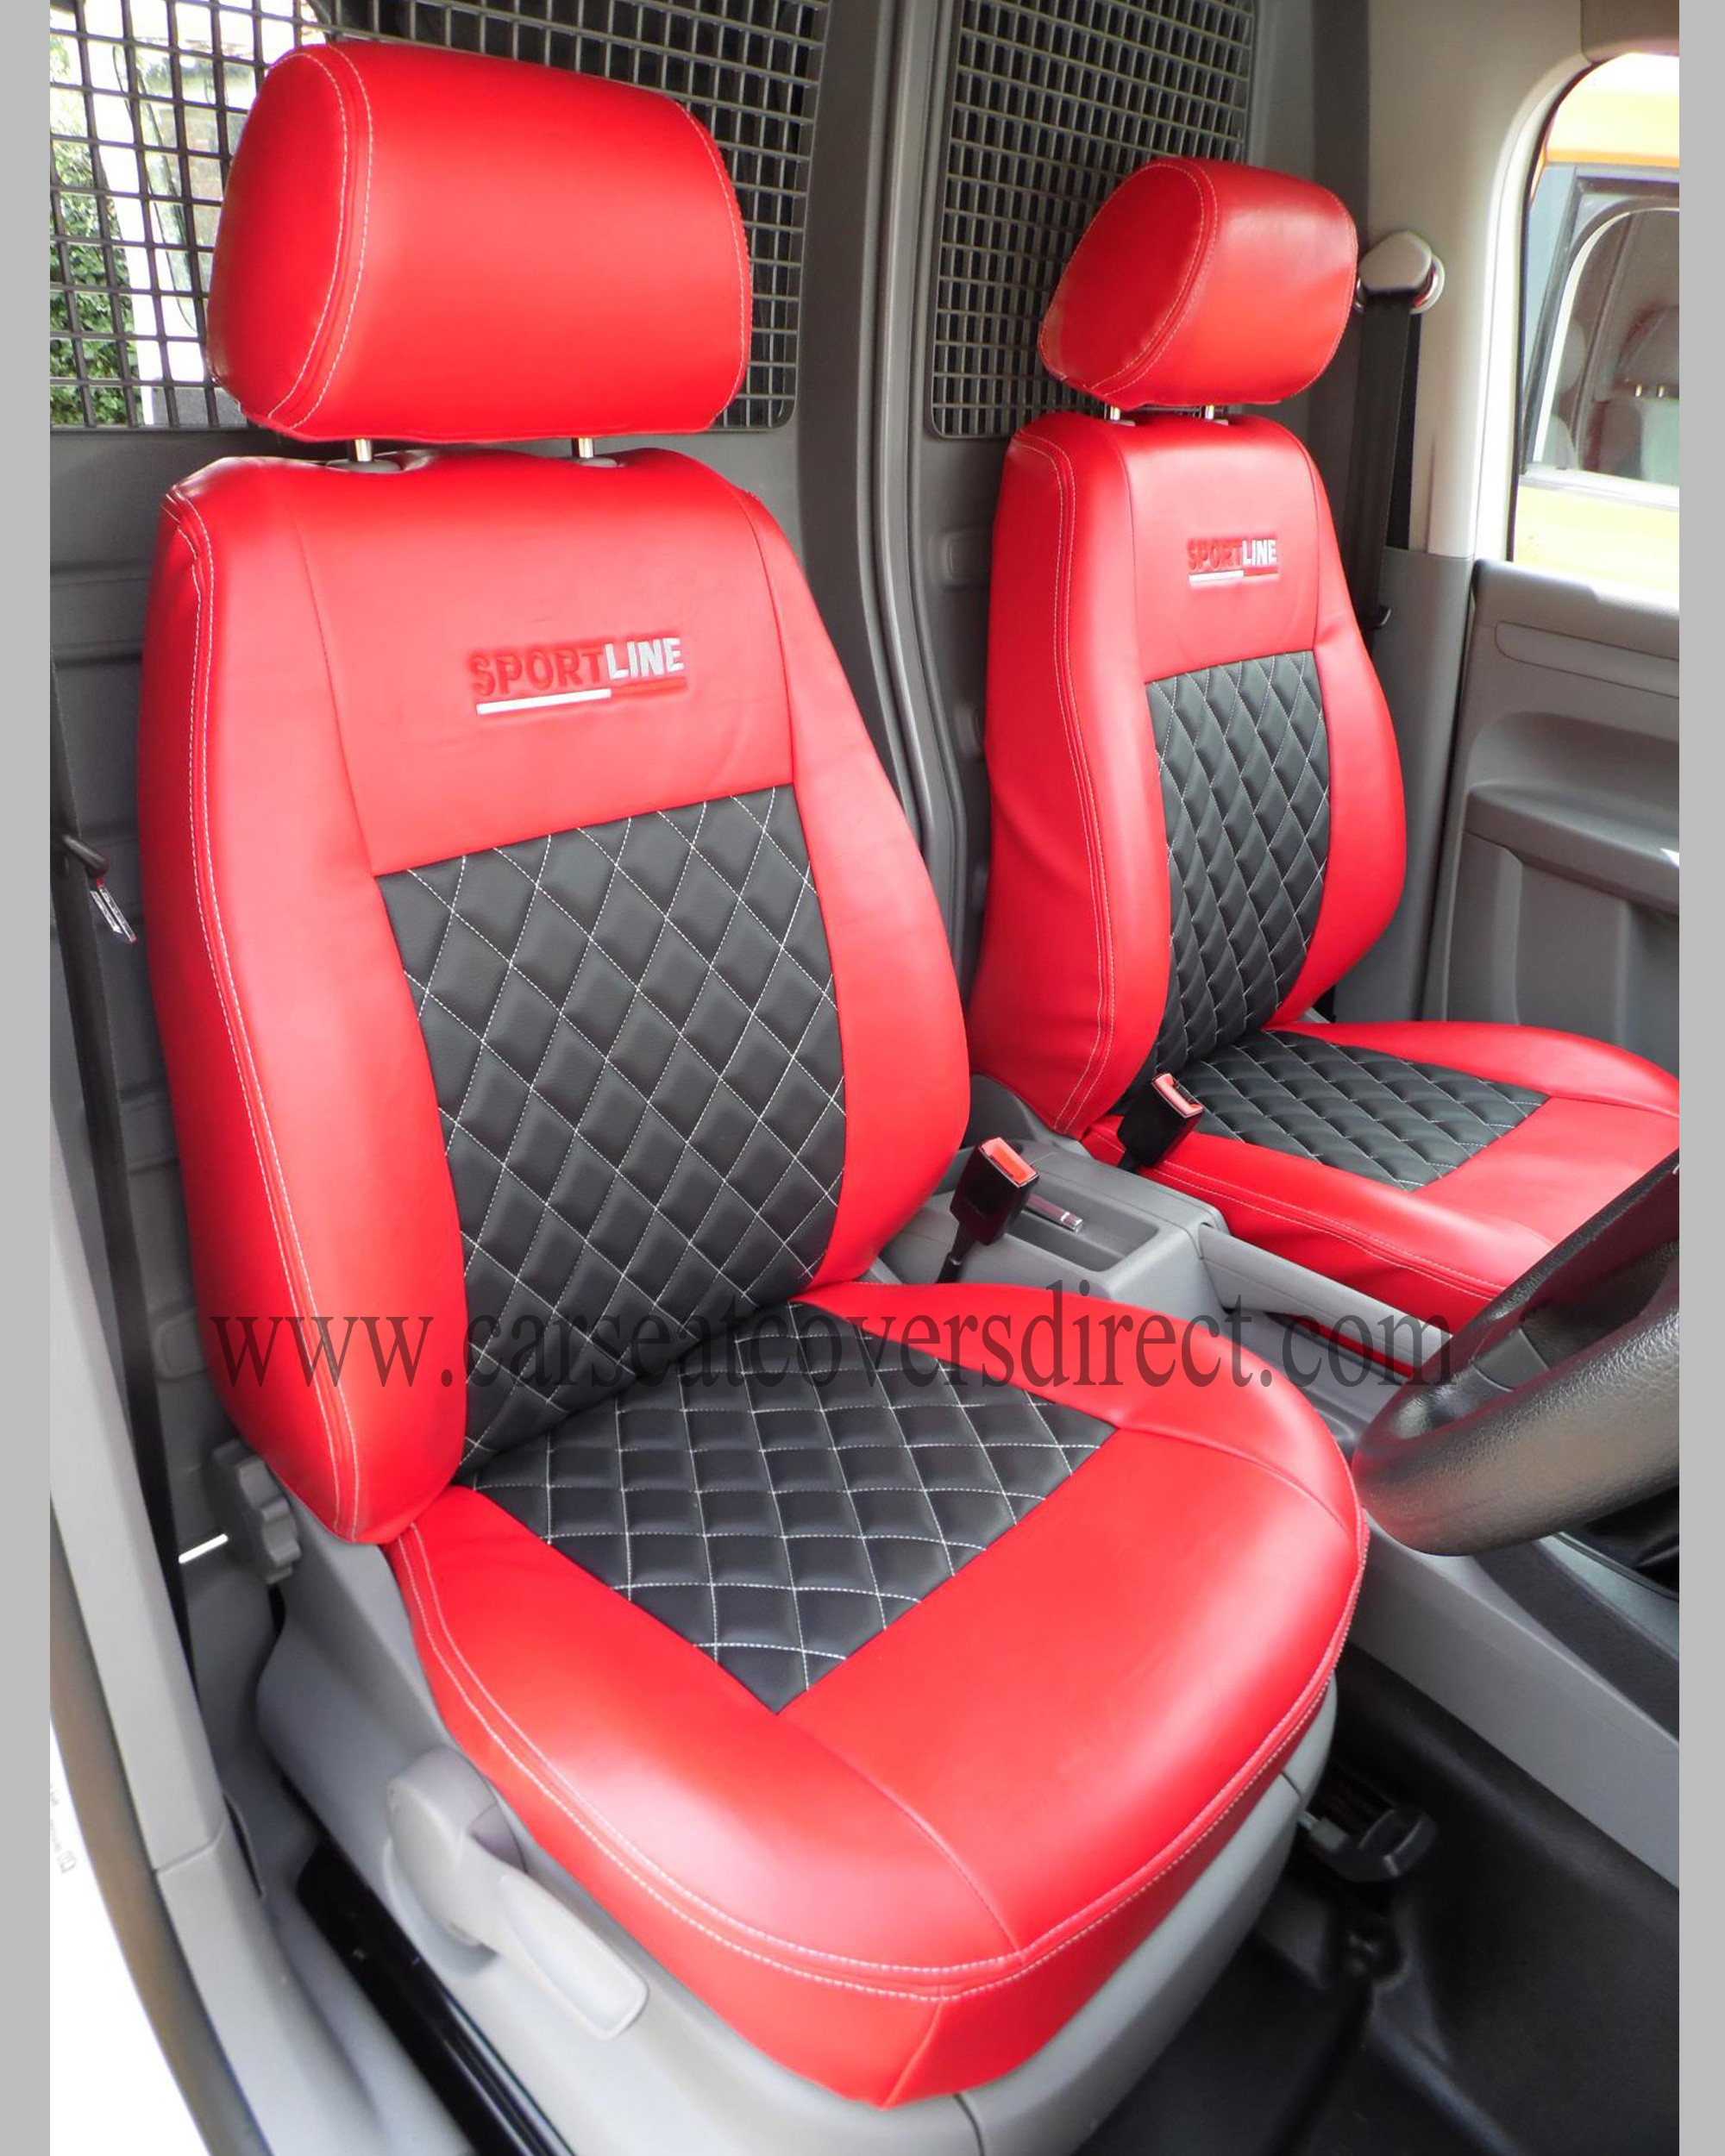 seat covers for a 2003 volkswagen beetle. Black Bedroom Furniture Sets. Home Design Ideas